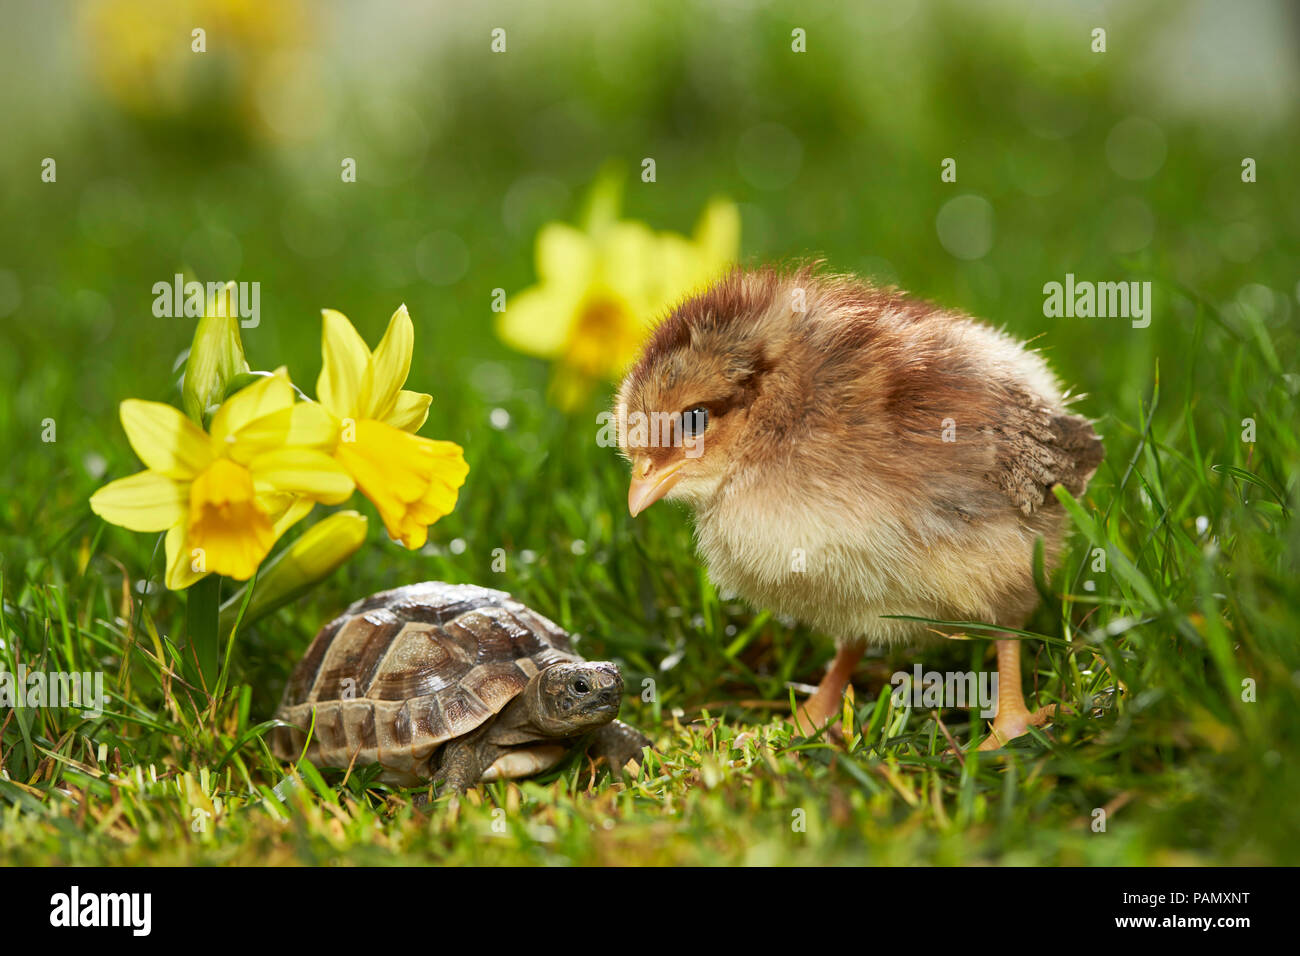 Welsummer Chicken. Chicken and young Mediterranean Spur-thighed Tortoise, Greek Tortoise (Testudo graeca) in flowering meadow in spring. Germany - Stock Image